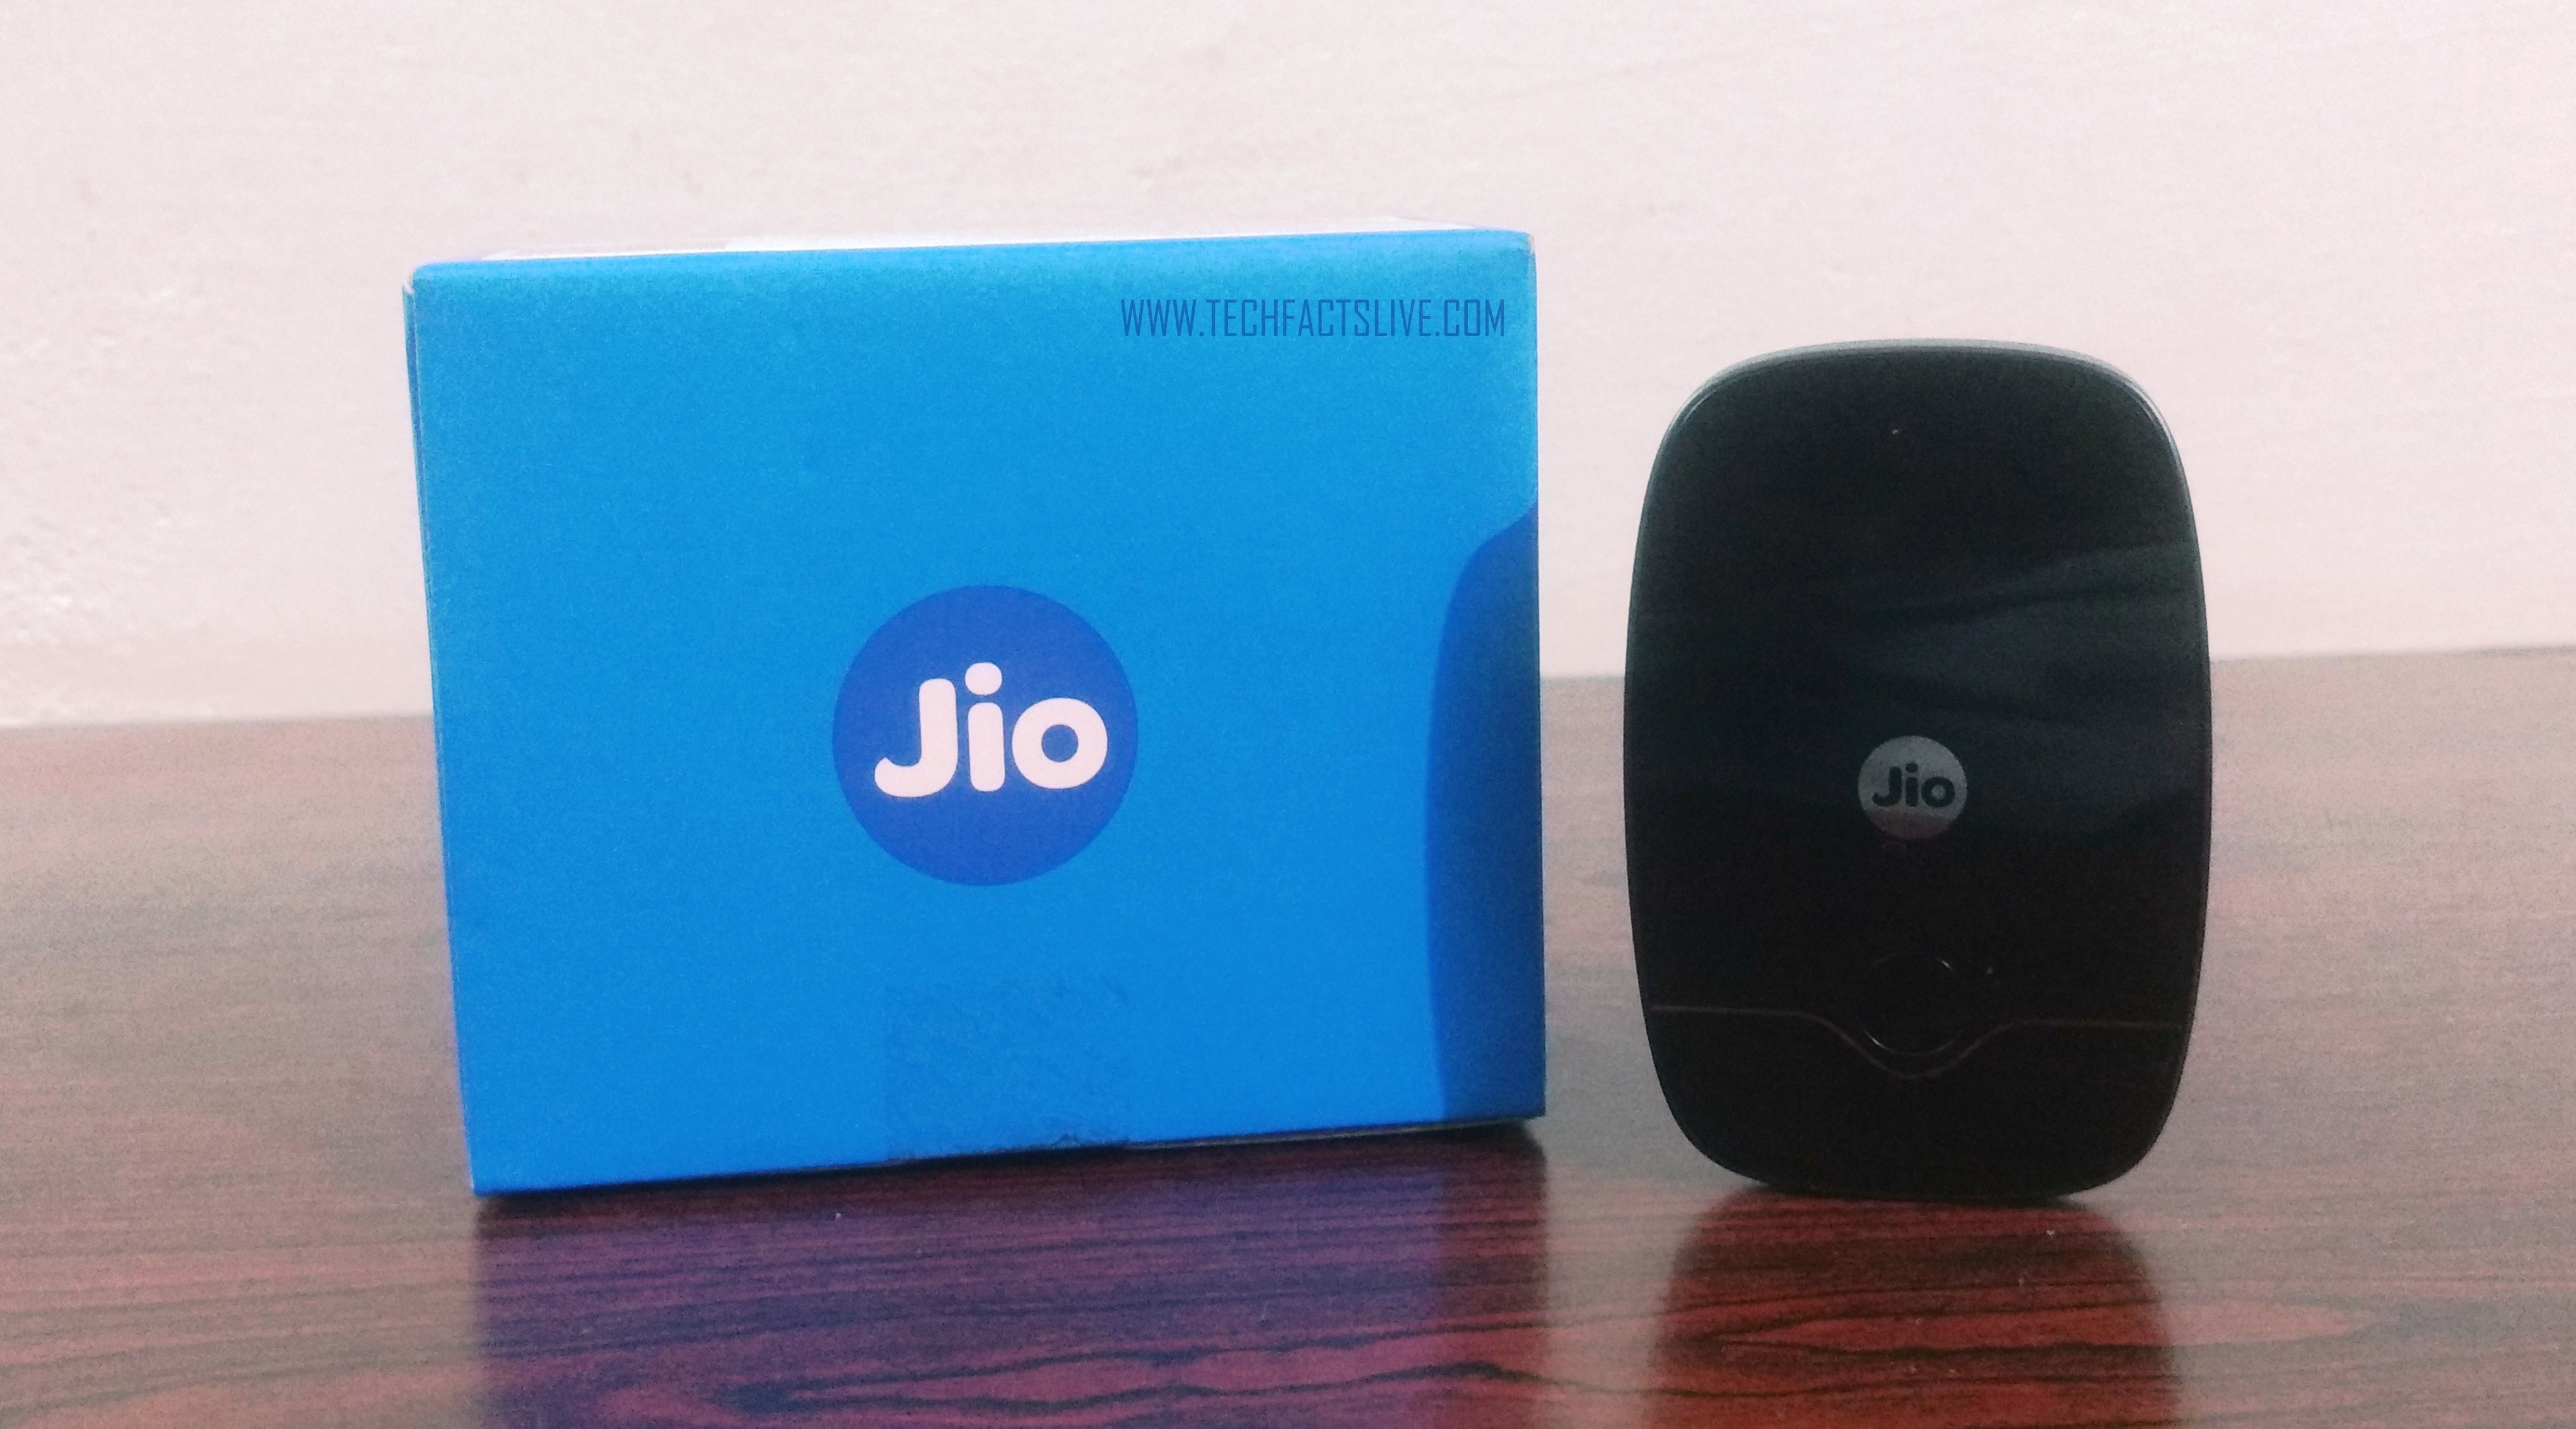 Jiofi unlock code | Reliance JioFi 3 JMR540 Wireless Router